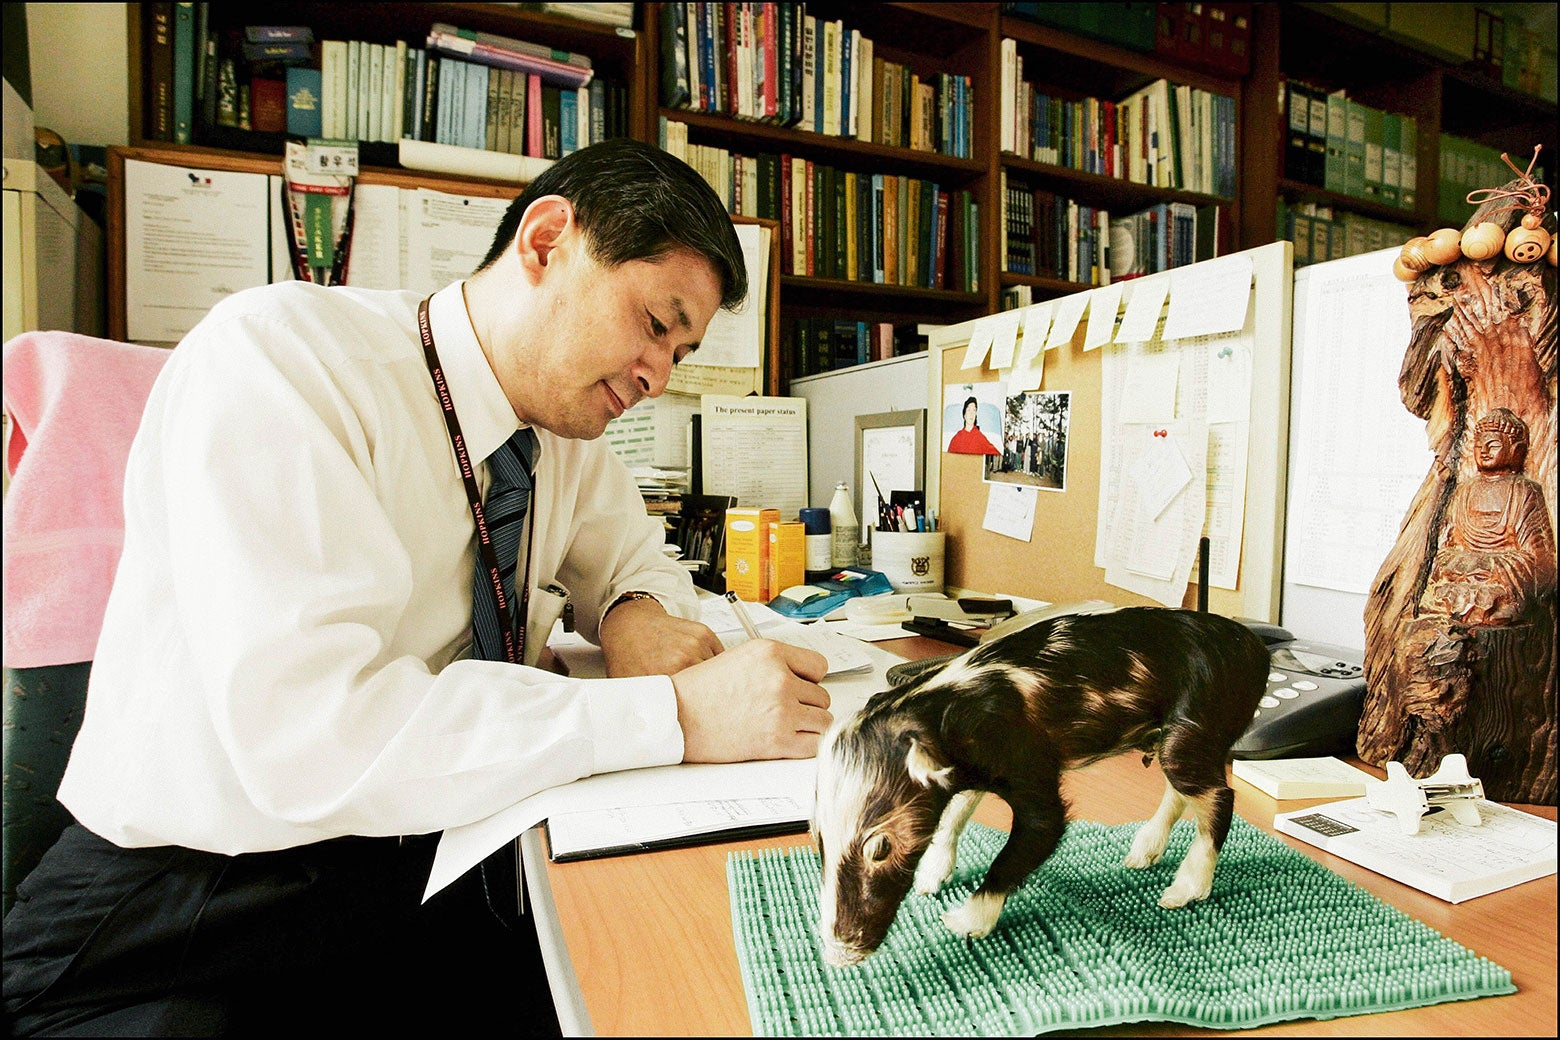 A scientist sits at a desk with a stuffed pig.